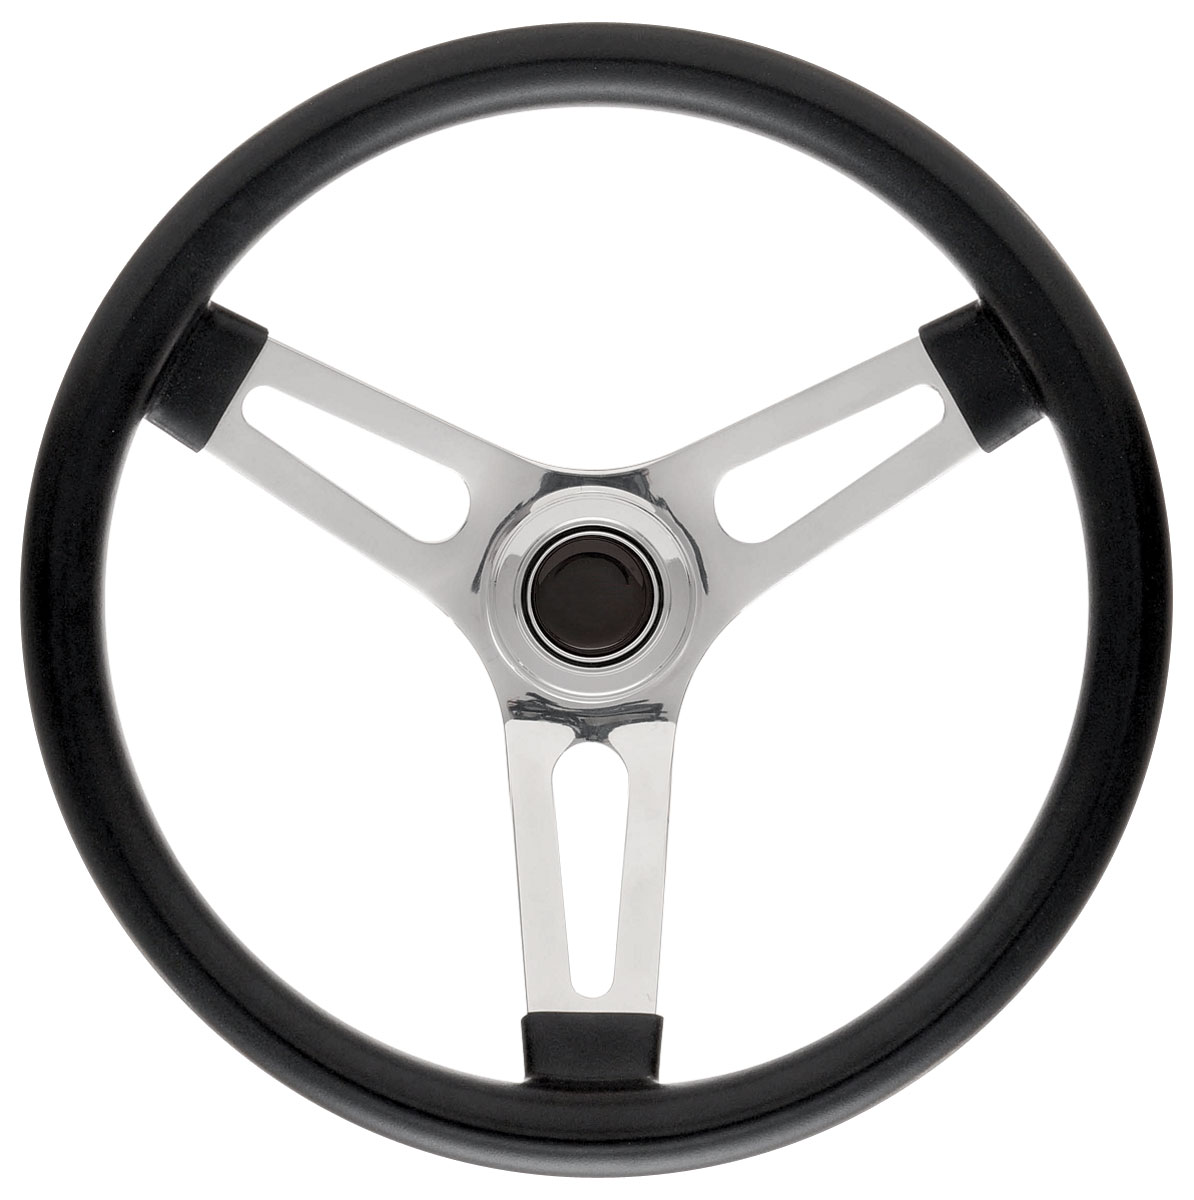 """Photo of Steering Wheel Kits, Symmetrical Style Tall Cap - Polished Early 1-1/2"""" dish with black center"""